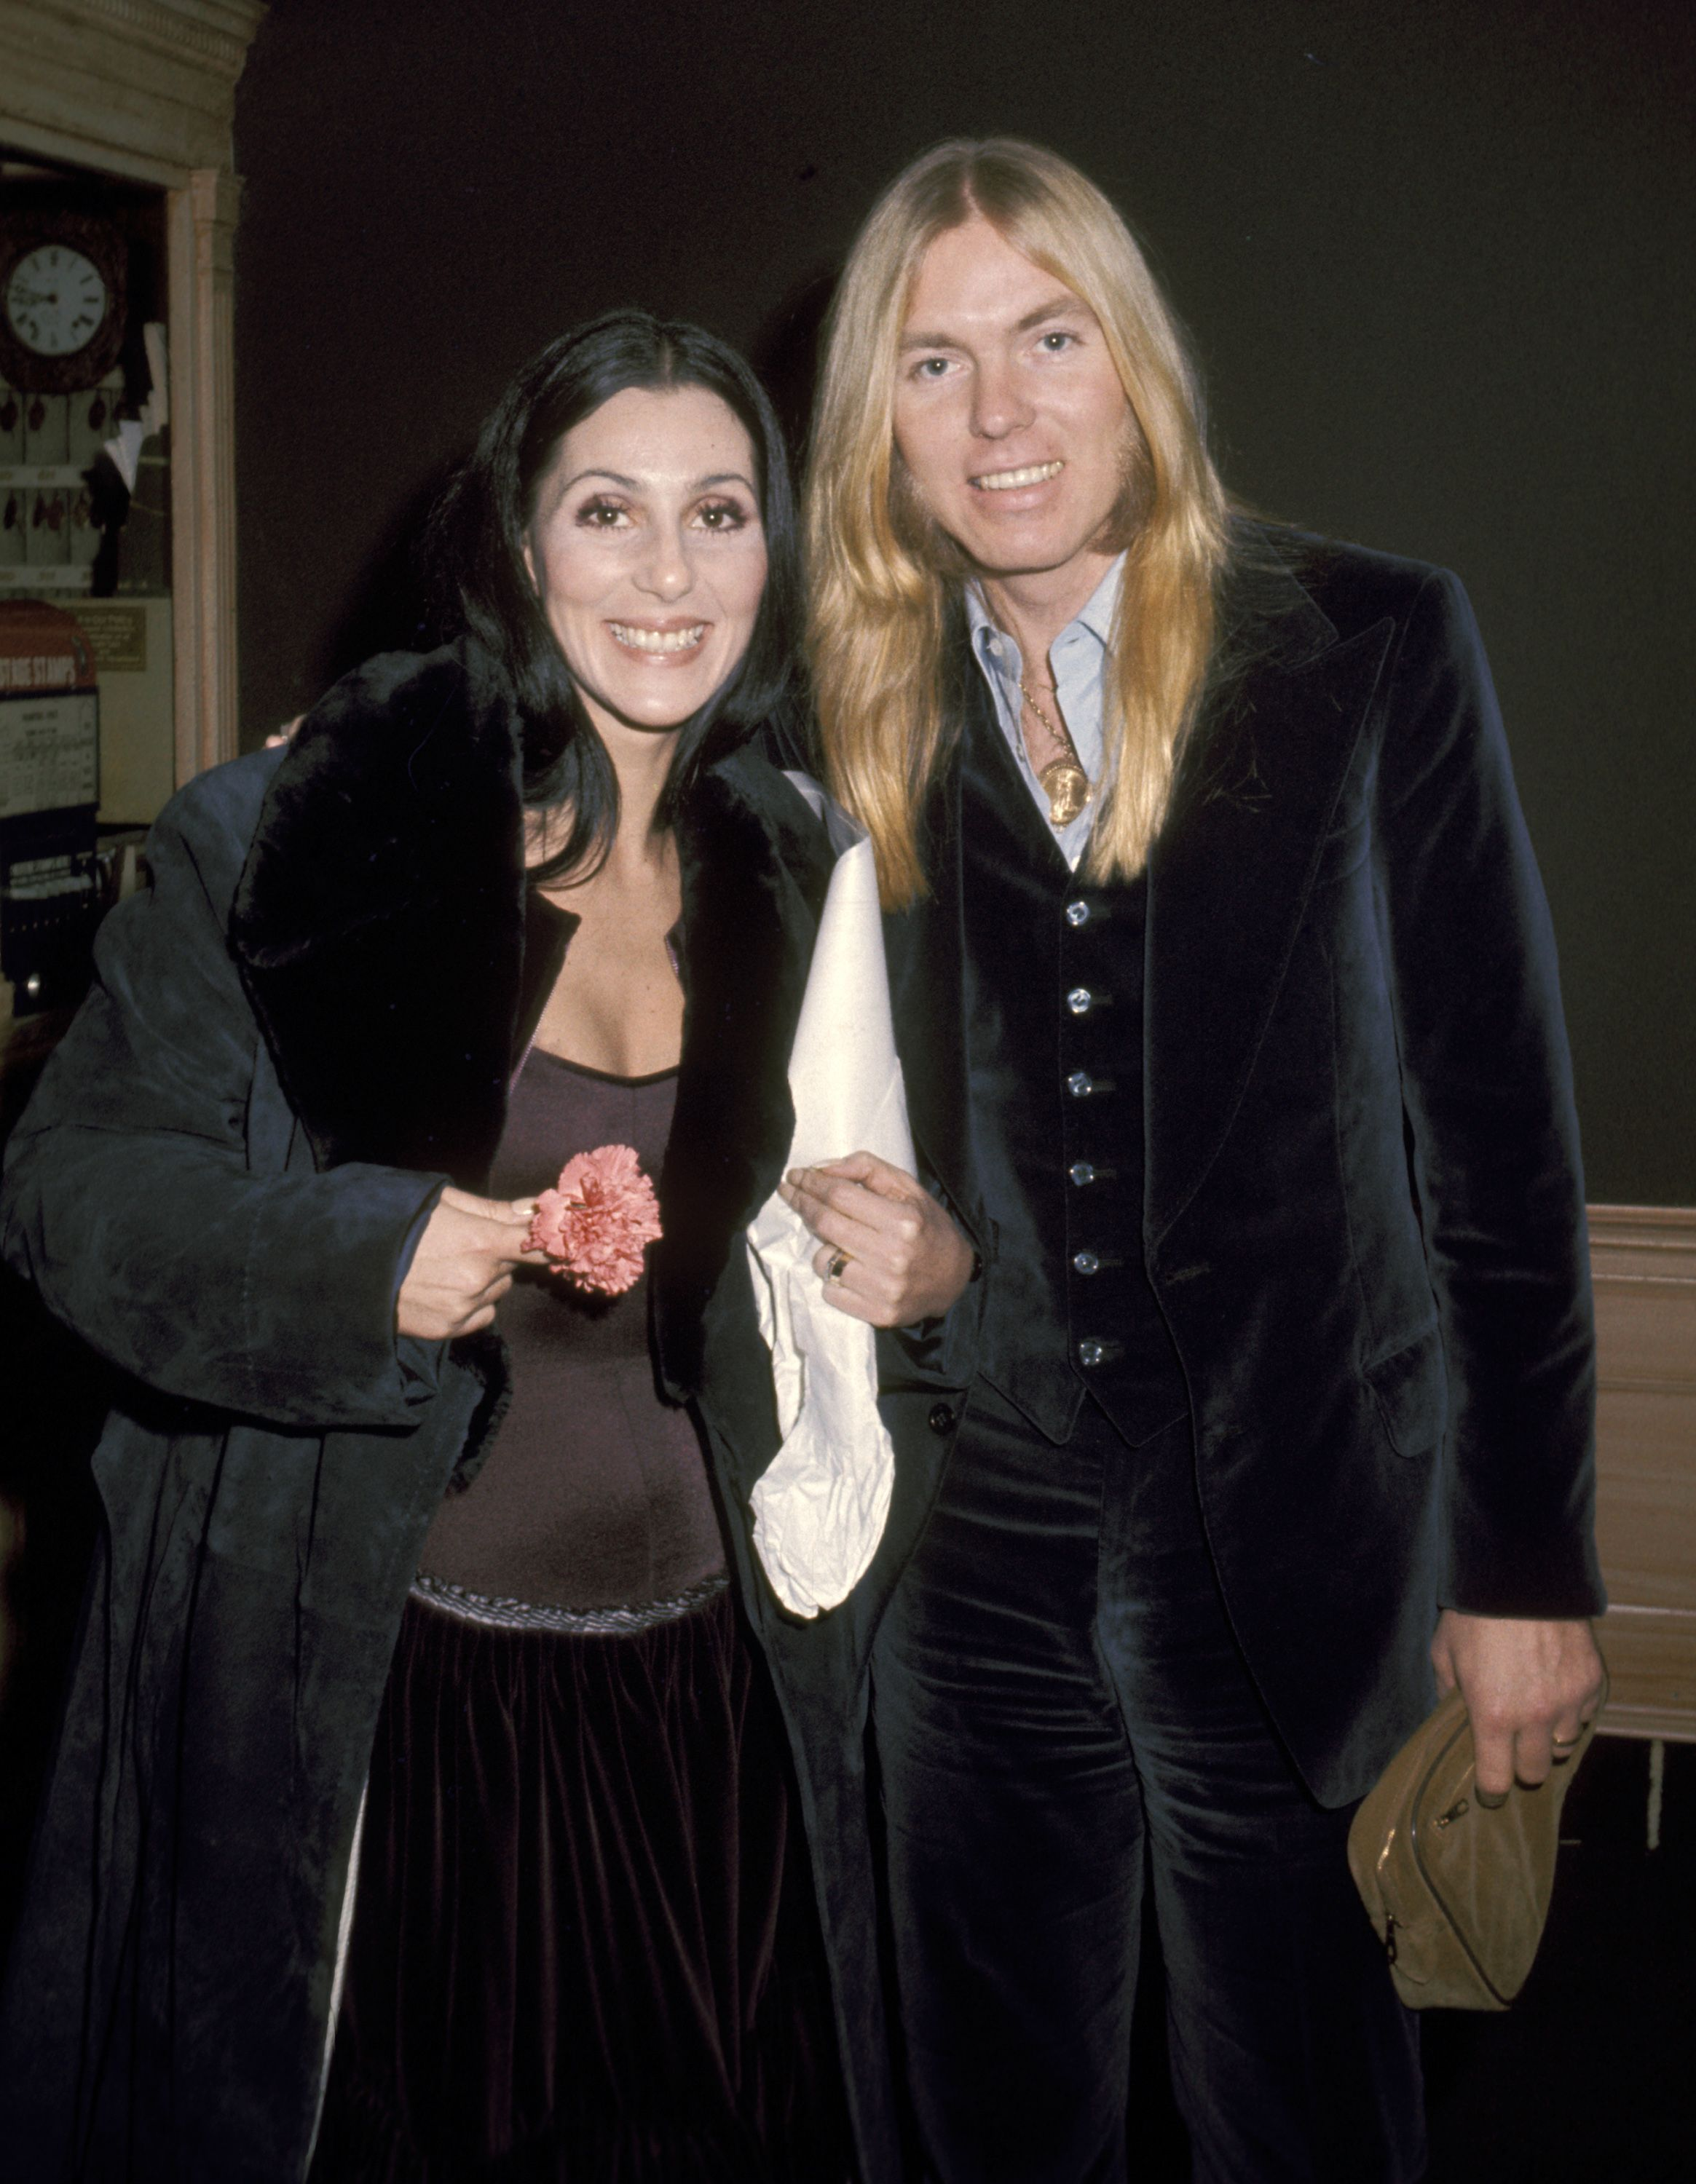 Cher and Gregg Allman in Georgetown | Source: Getty Images